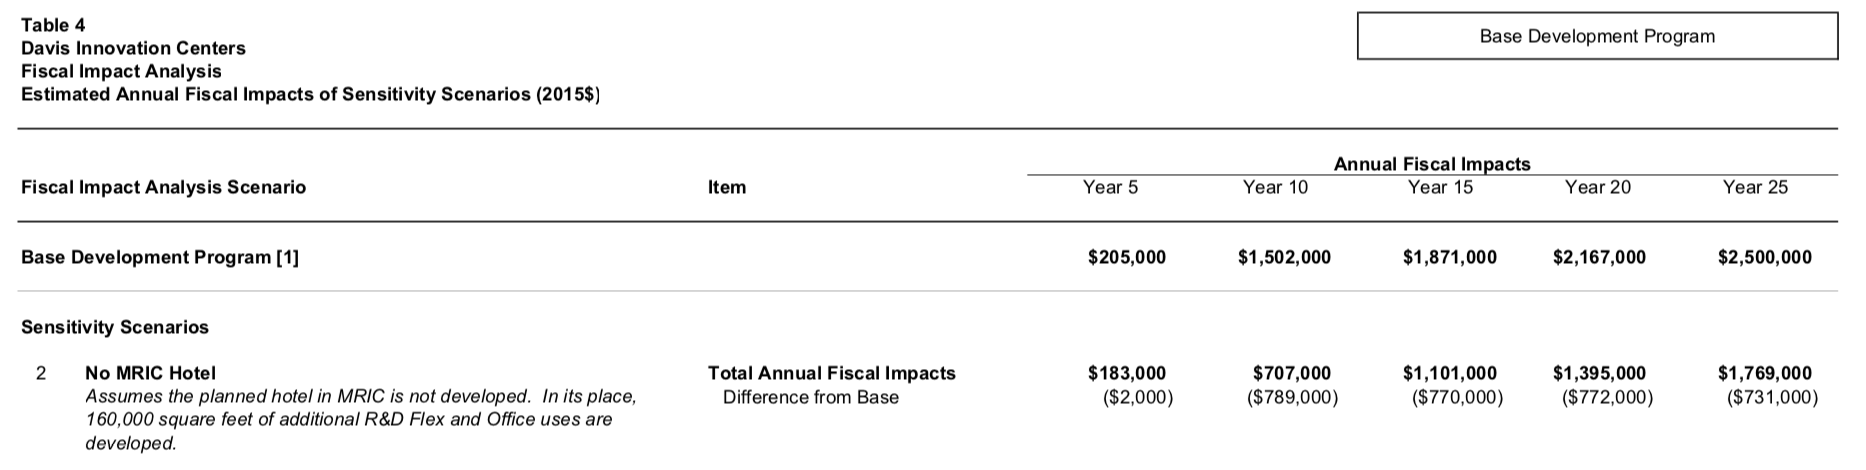 https://www.davisvanguard.org/wp-content/uploads/2018/12/Table-3-from-April-2016-EPS-report-to-FBC-on-MRIC.png